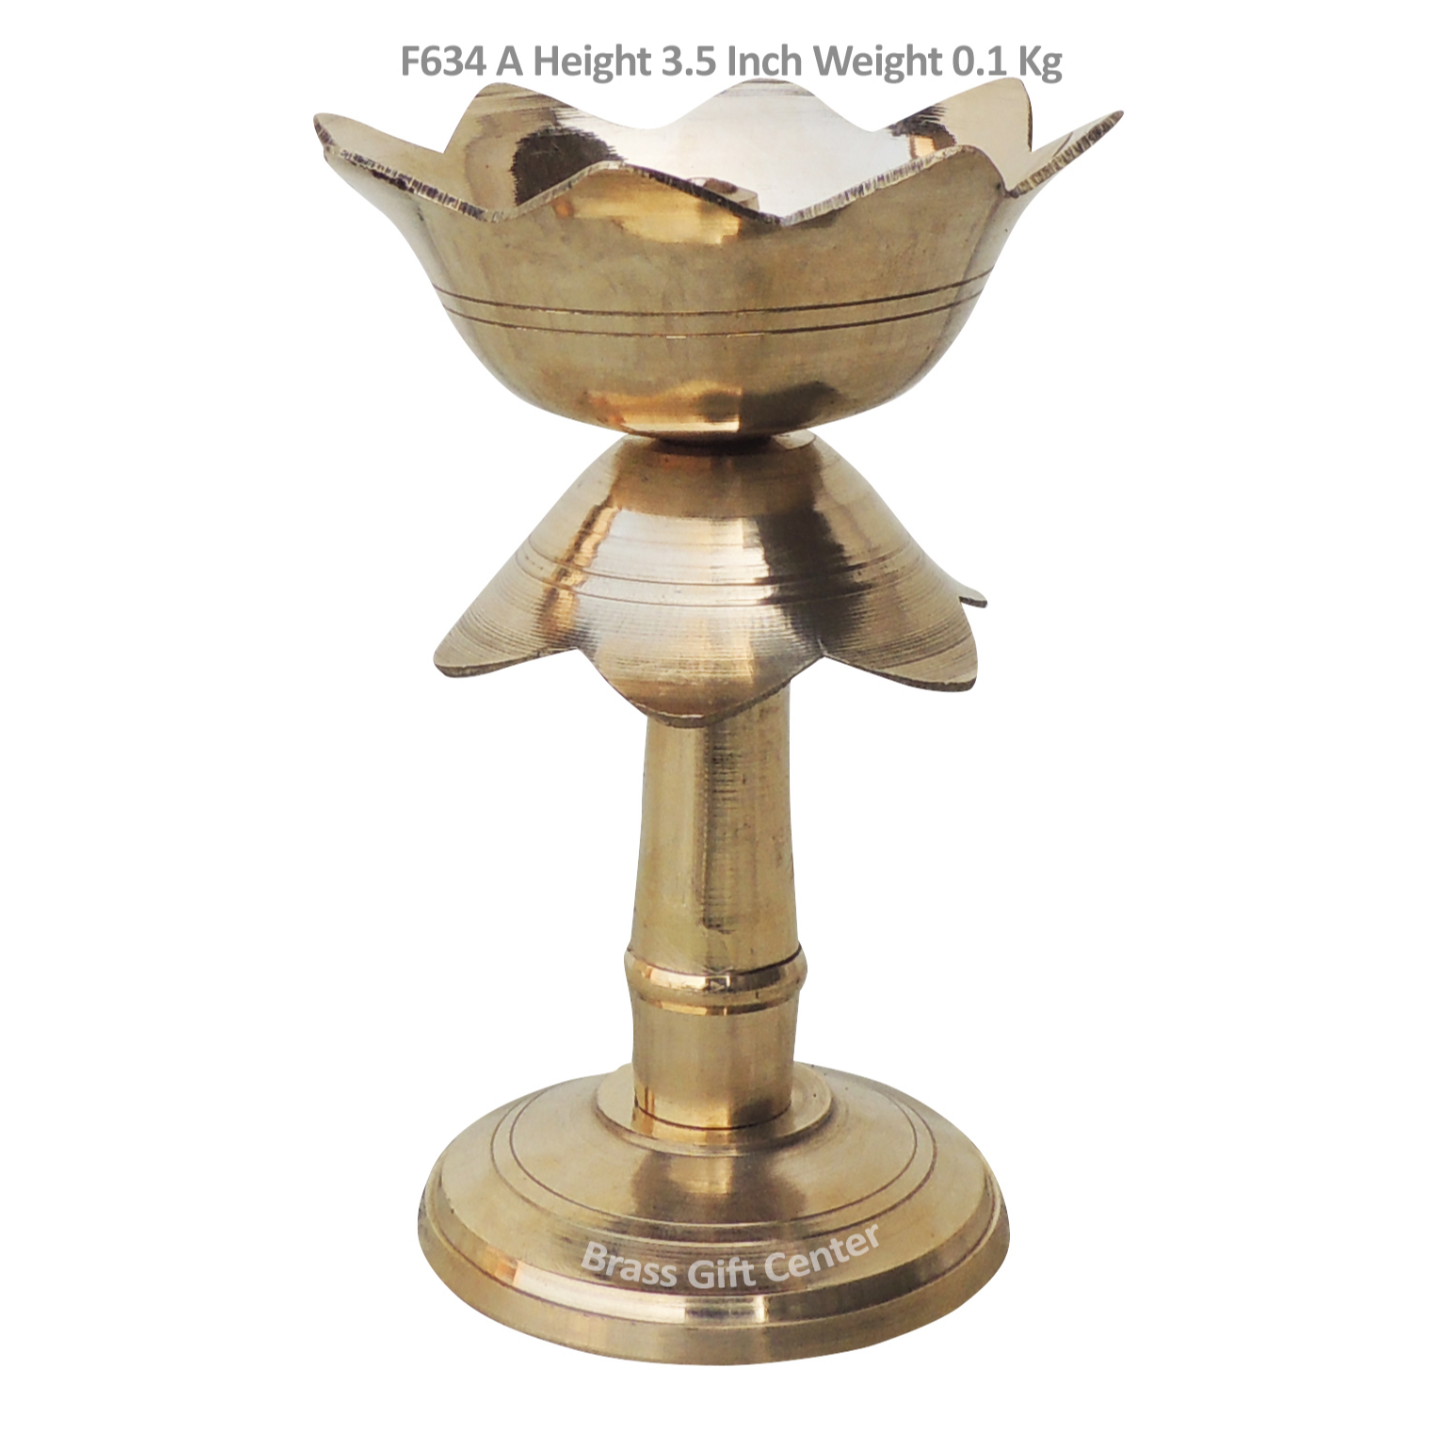 Brass Lotus Shape Deepak With Stand - 3.5 Inch (F634 A)